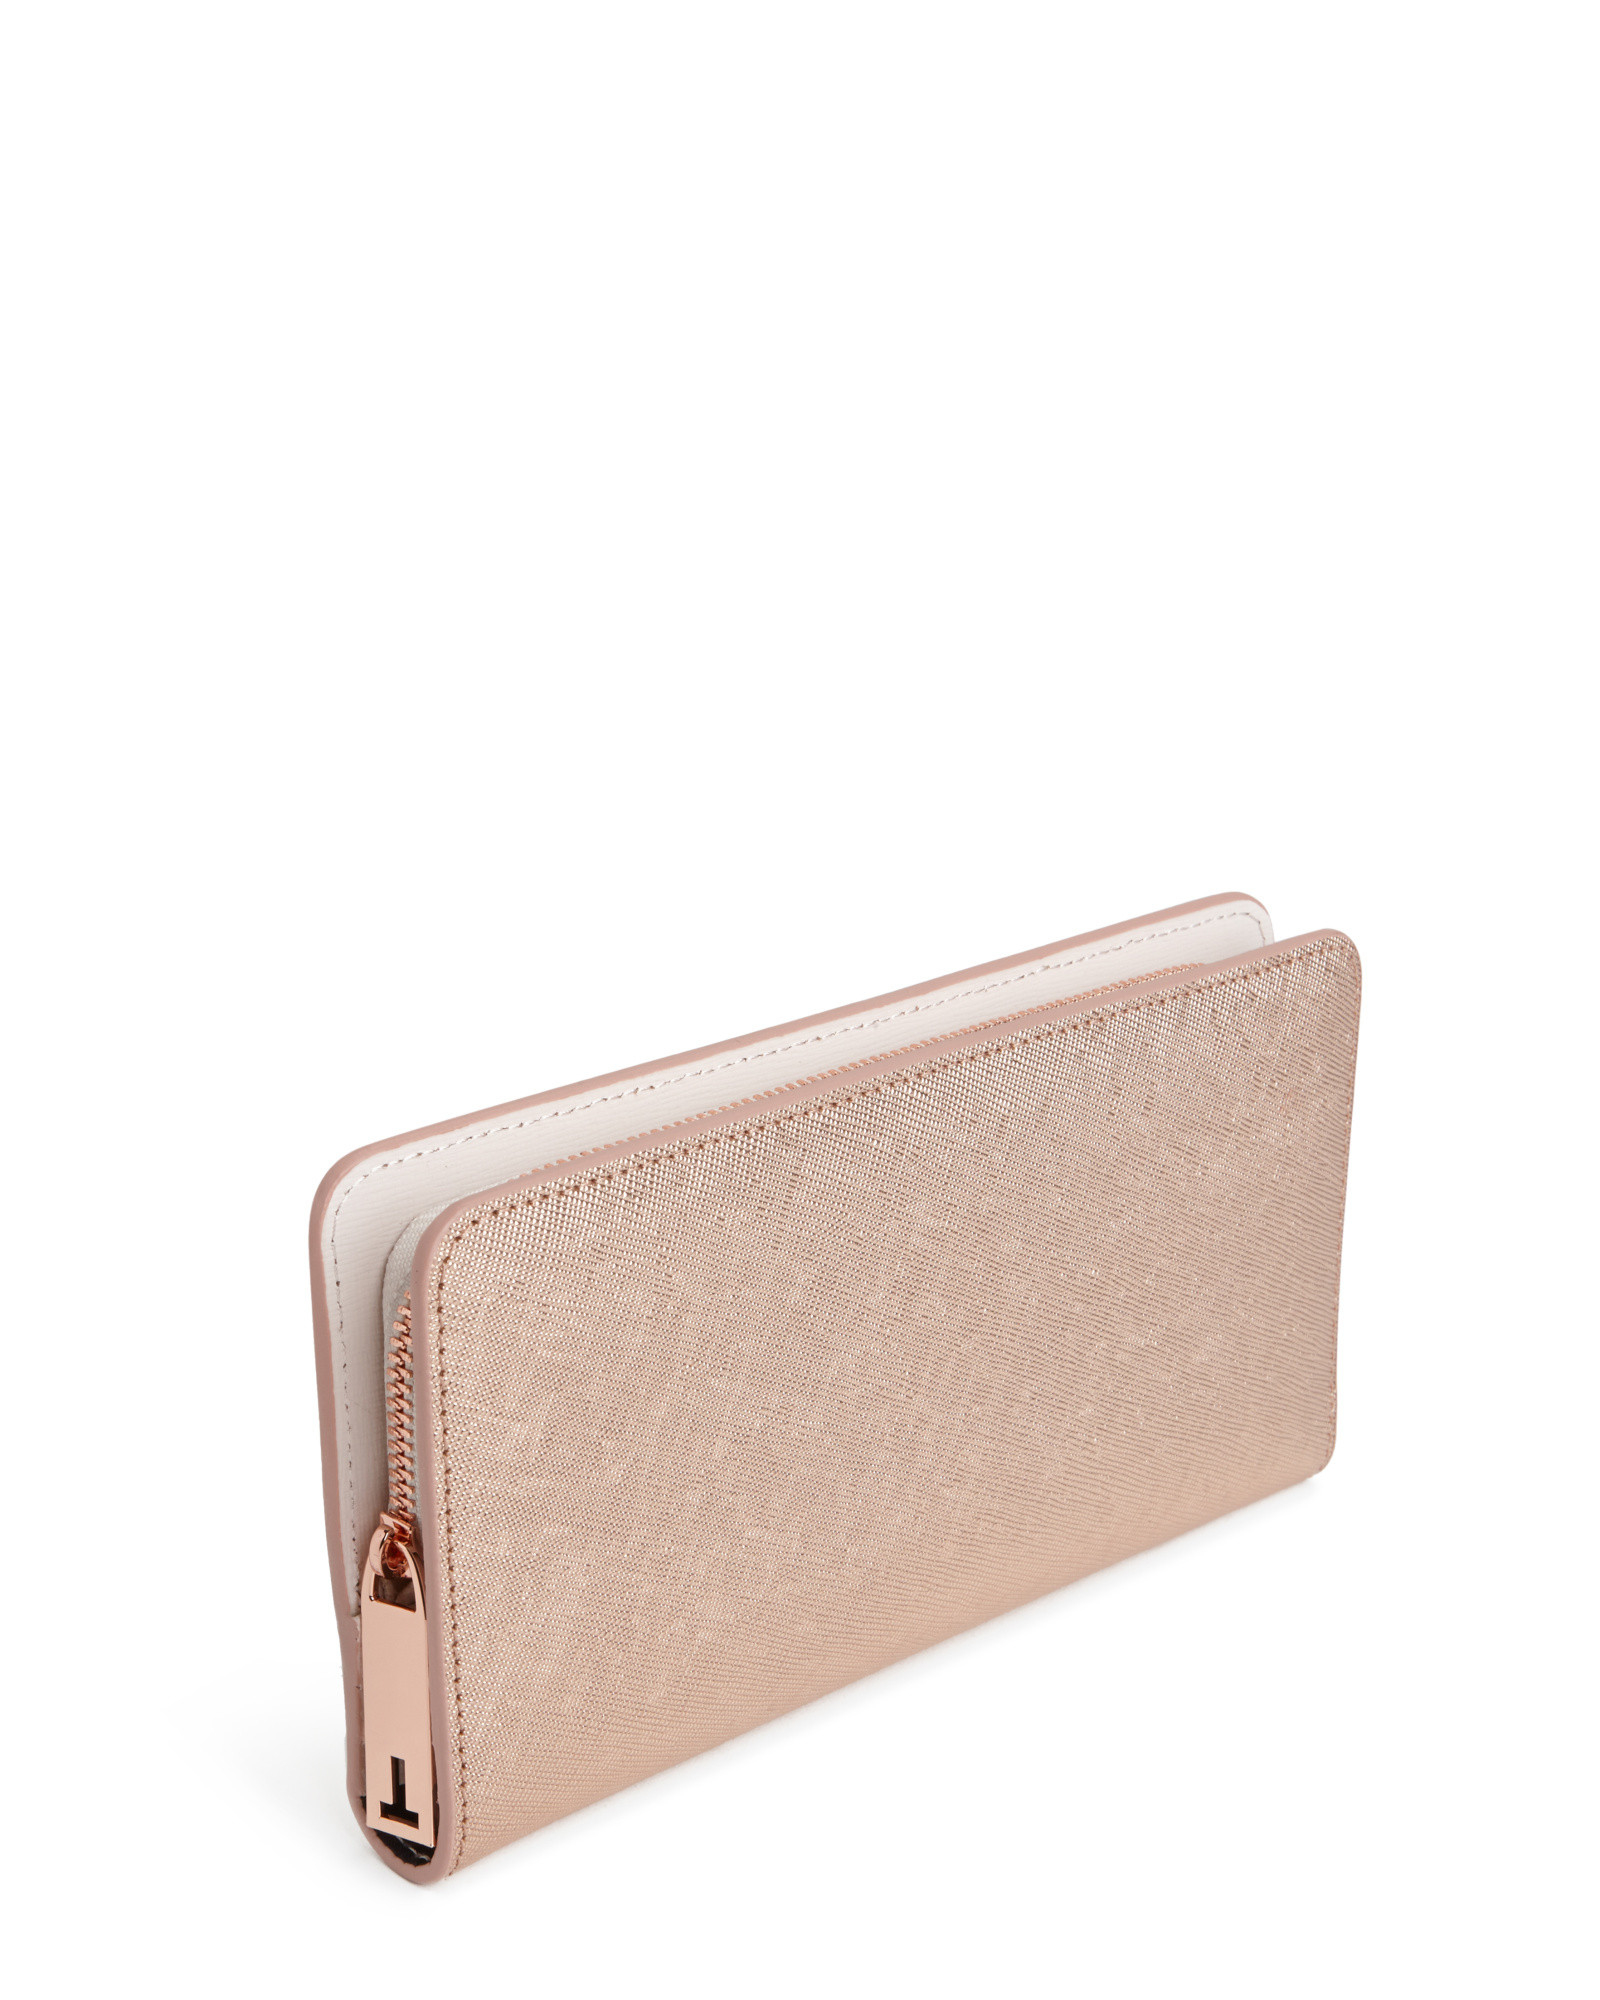 427880ee359ceb Ted Baker Leather Matinee Purse In Pink Lyst. Ted Baker Womens Accessories  Marta Crystal Pearl Bobble Matinee Purse Rose Gold